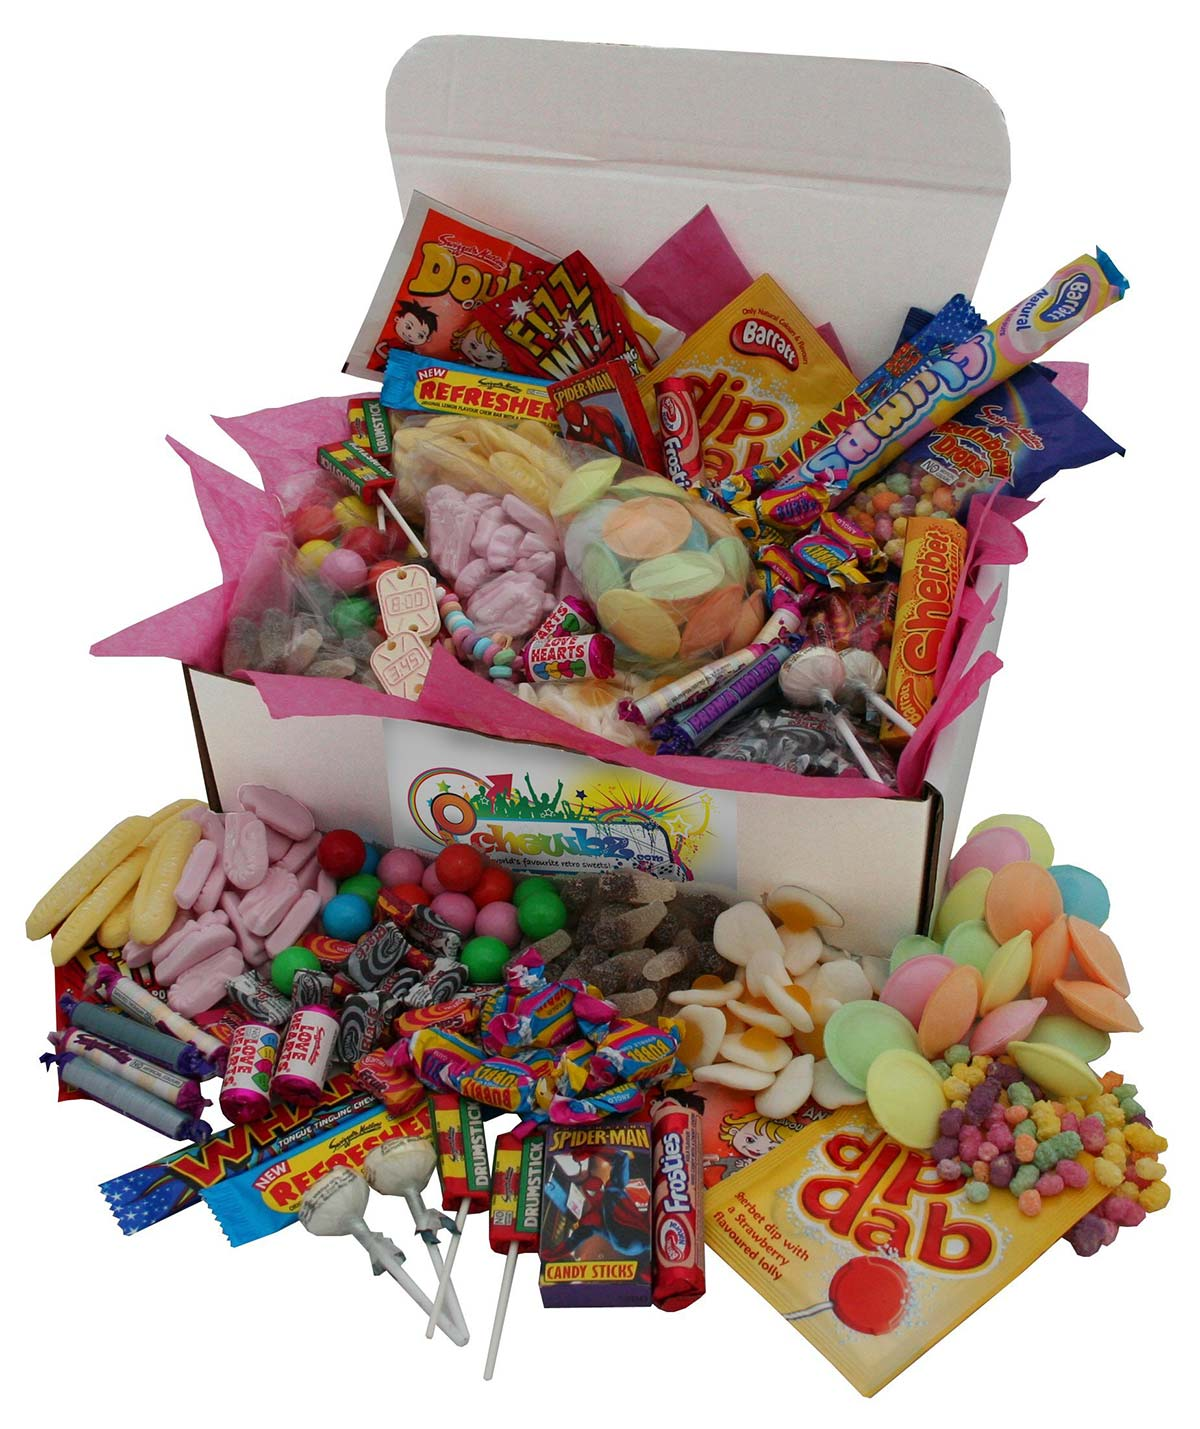 Chewbz Sweetshop Large Gift Box